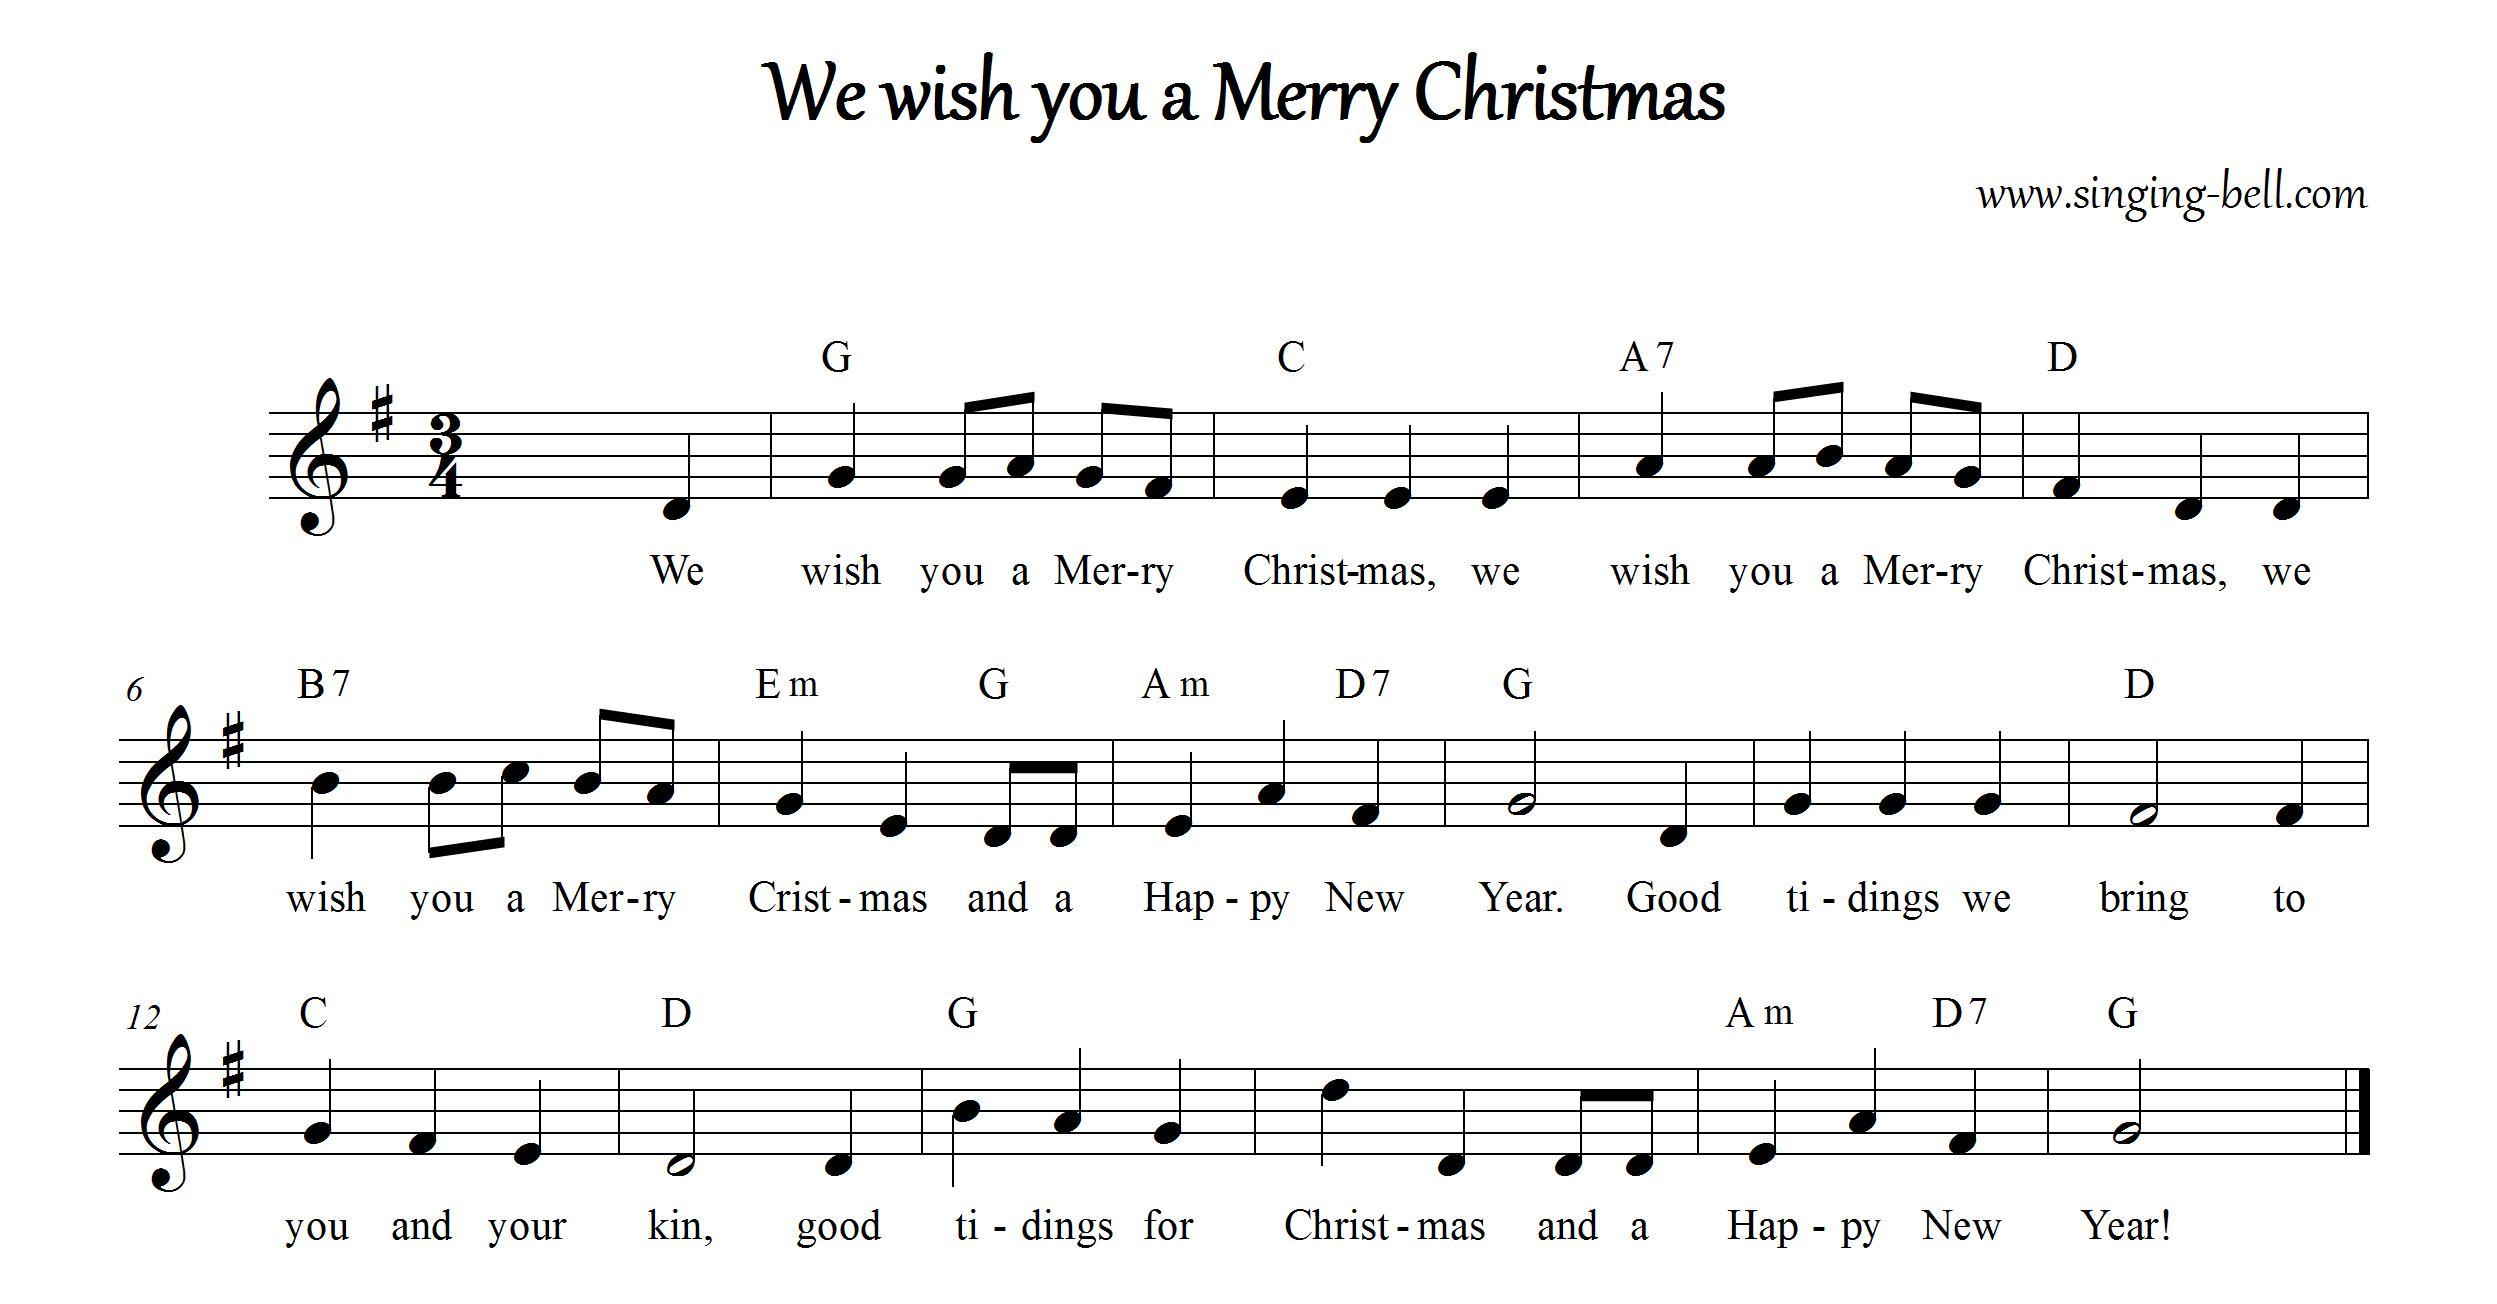 image about Lyrics to We Wish You a Merry Christmas Printable called We Drive on your own a Merry Xmas Karaoke Carols for Children